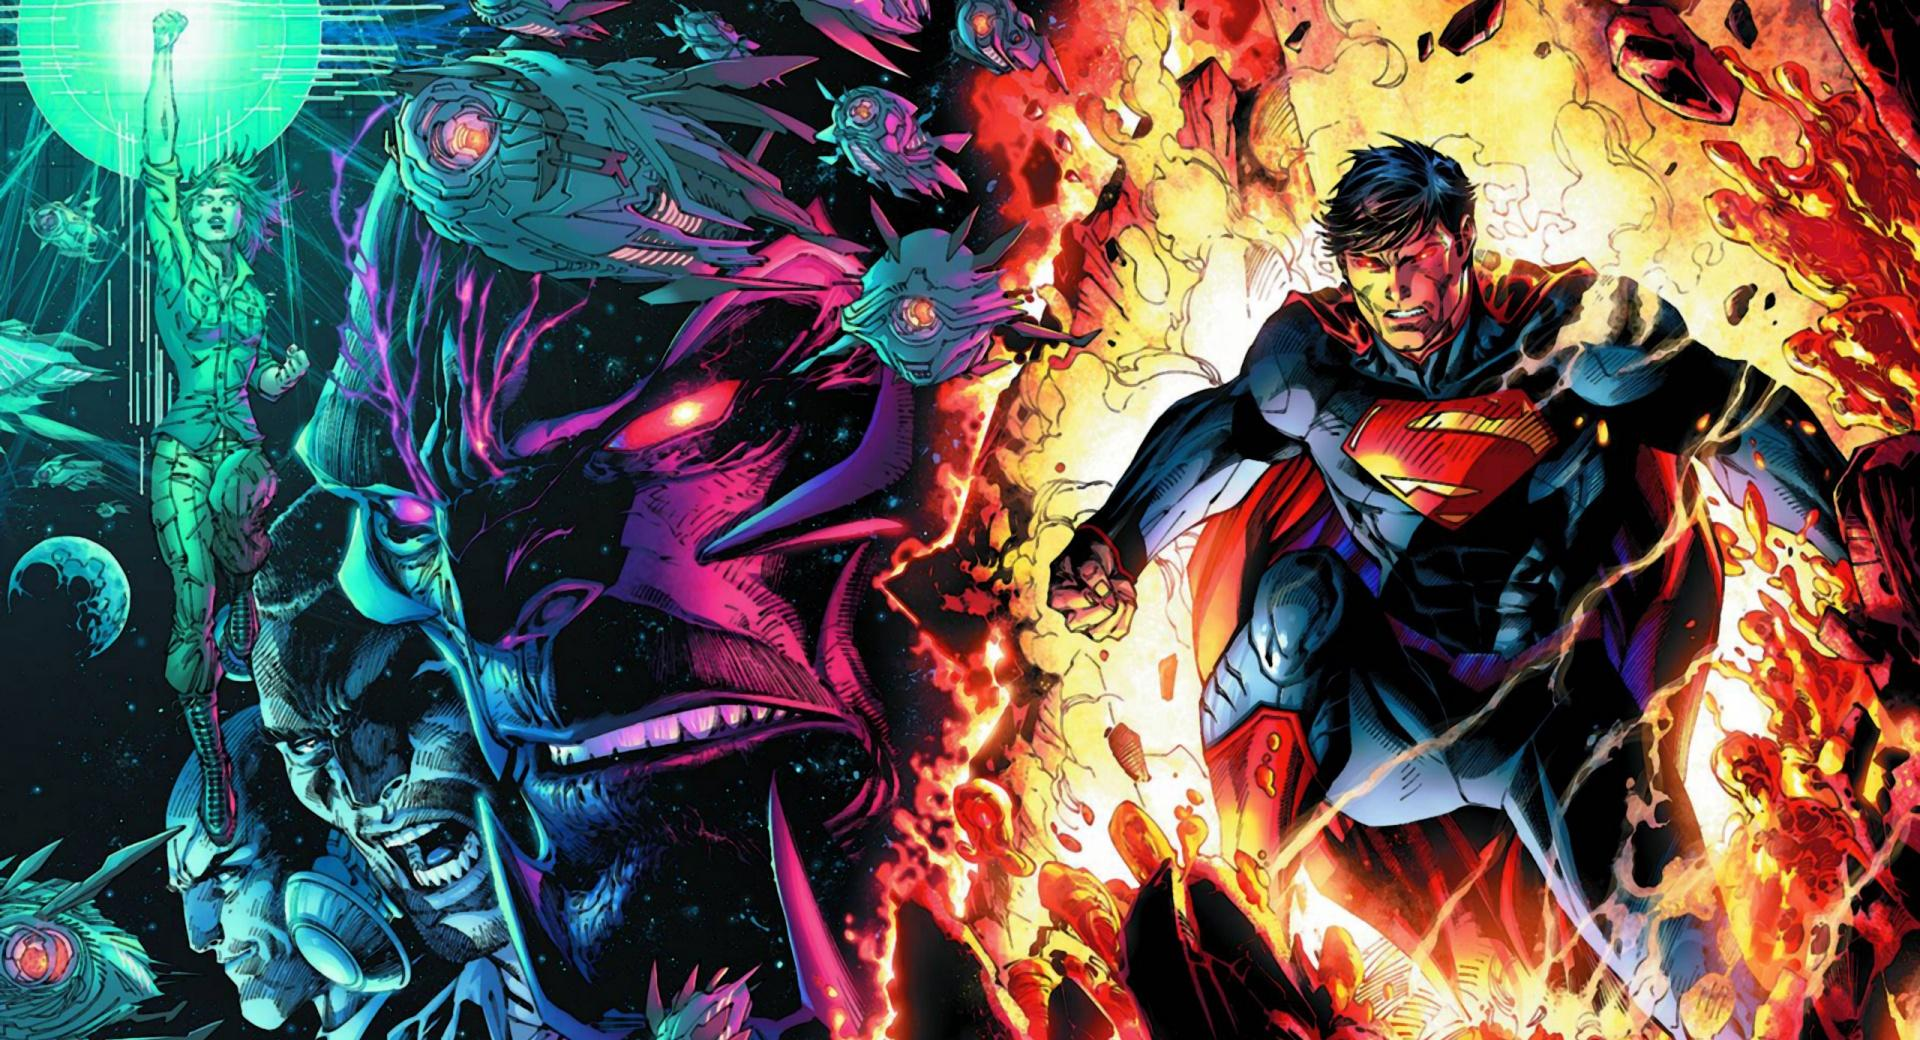 Superman Off The Chain wallpapers HD quality